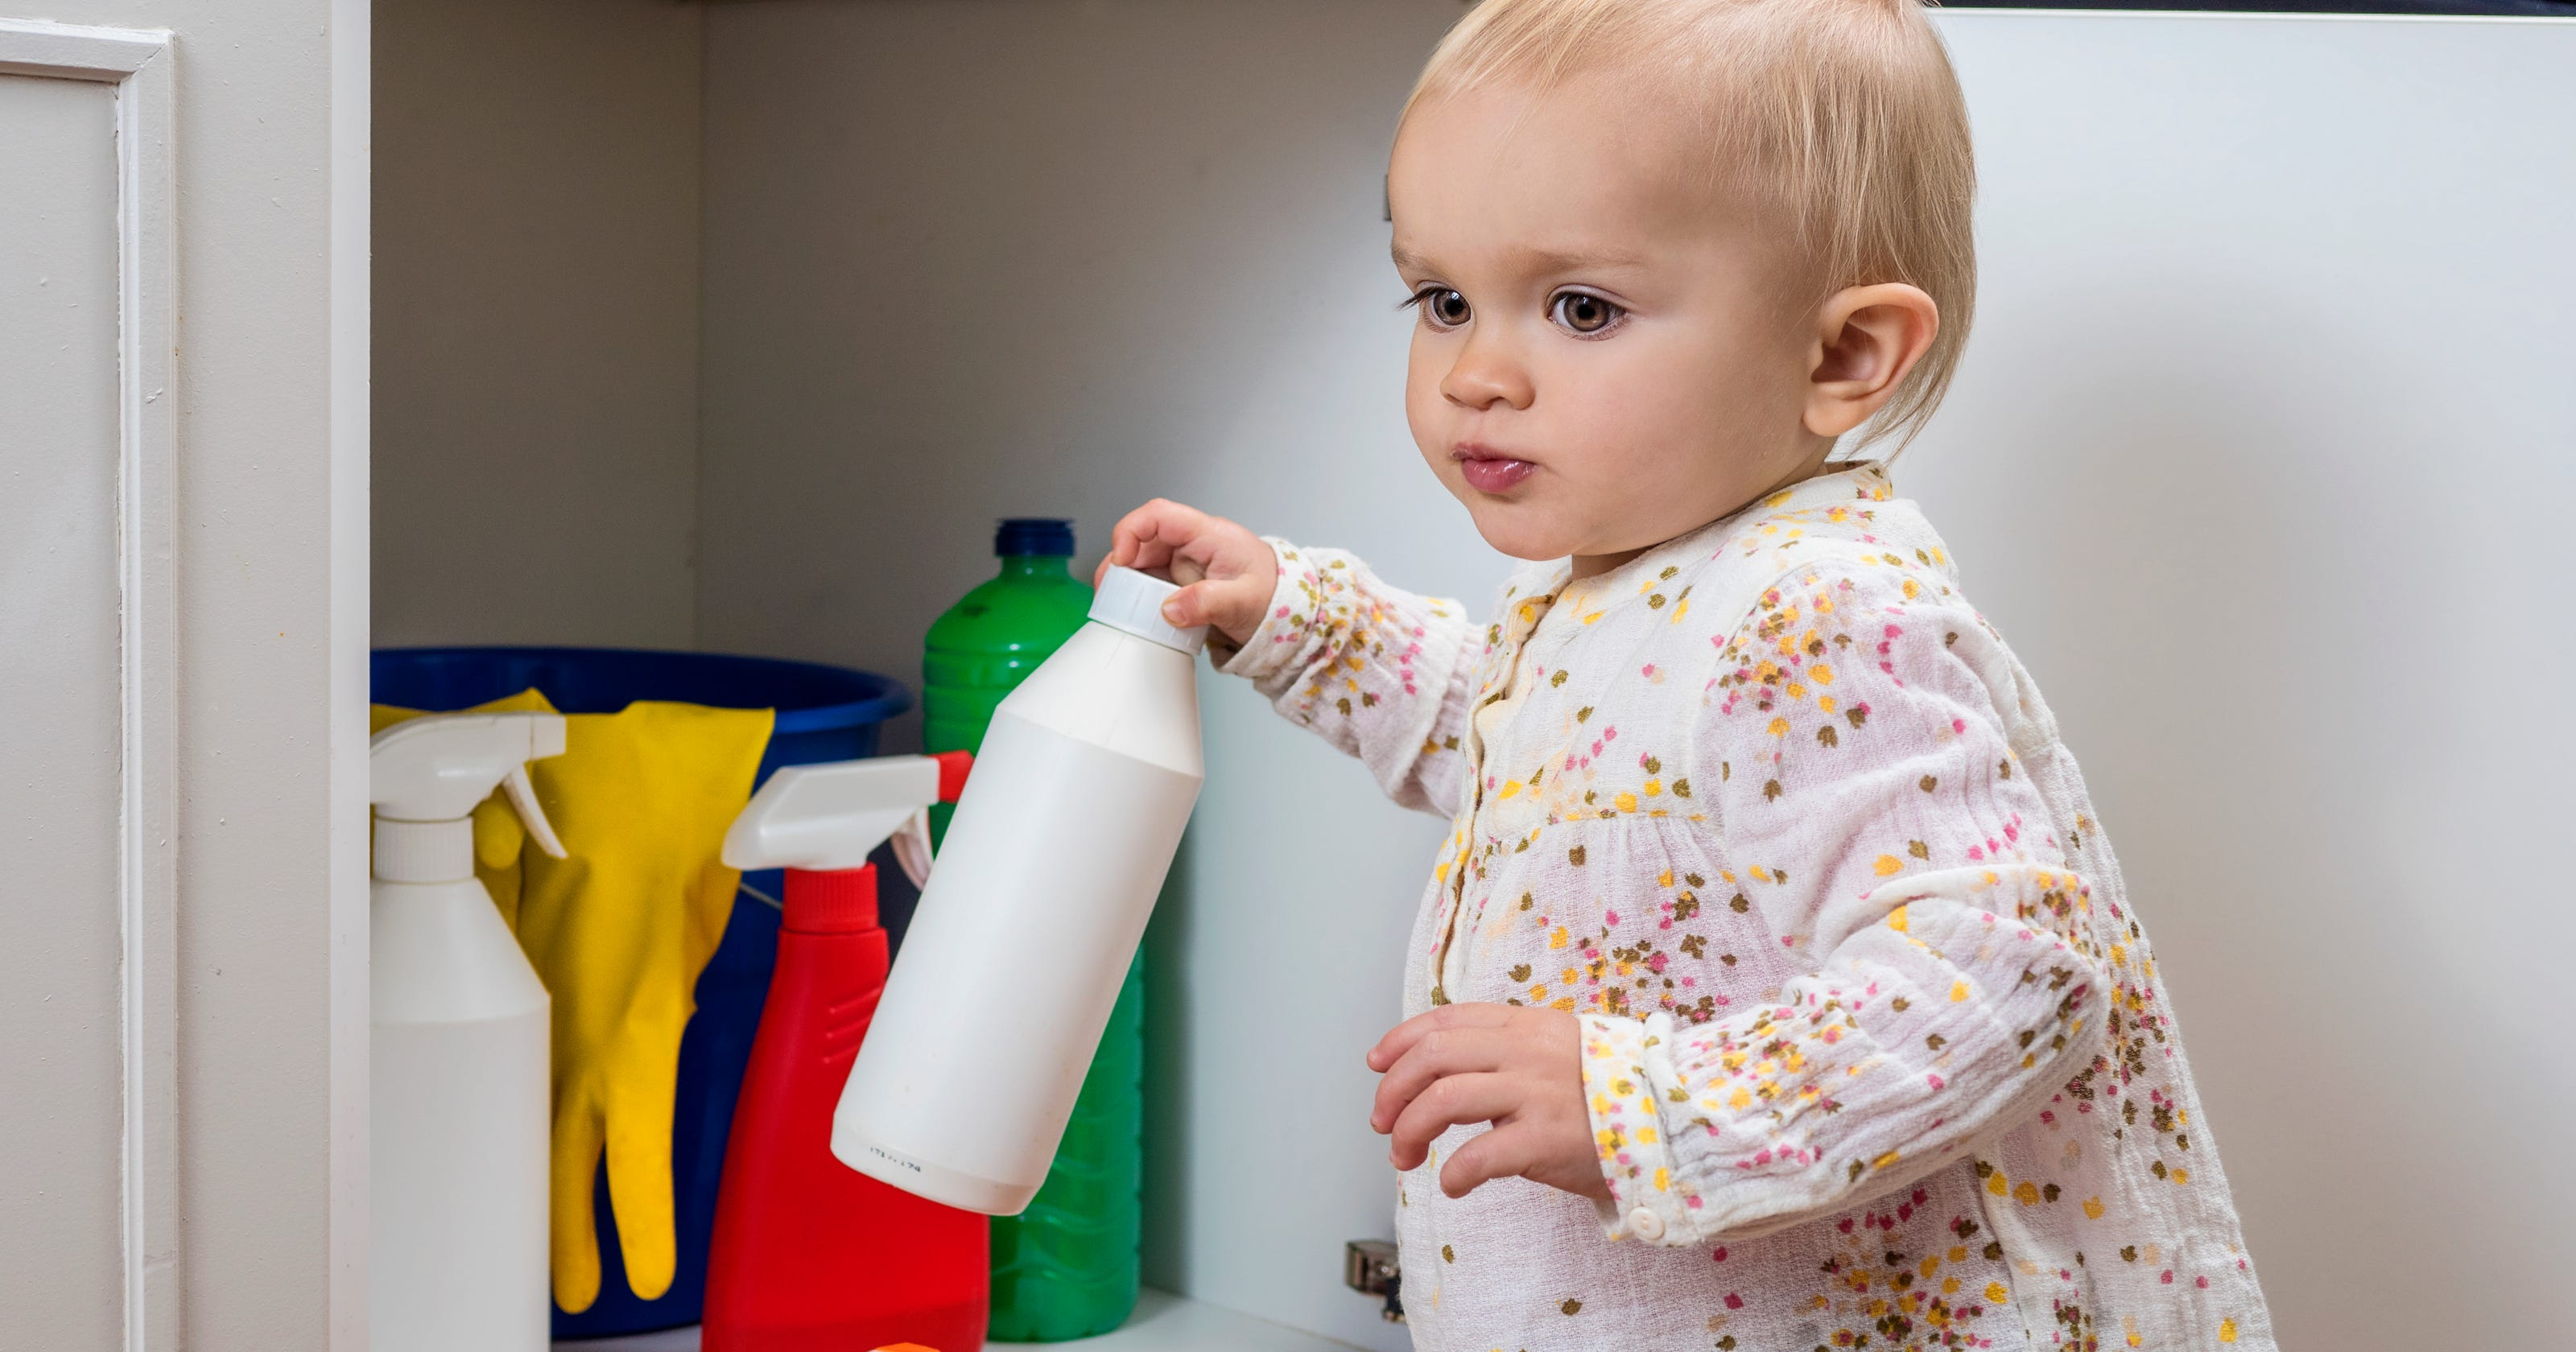 household safety preventing poisoning for parents - HD3200×1680